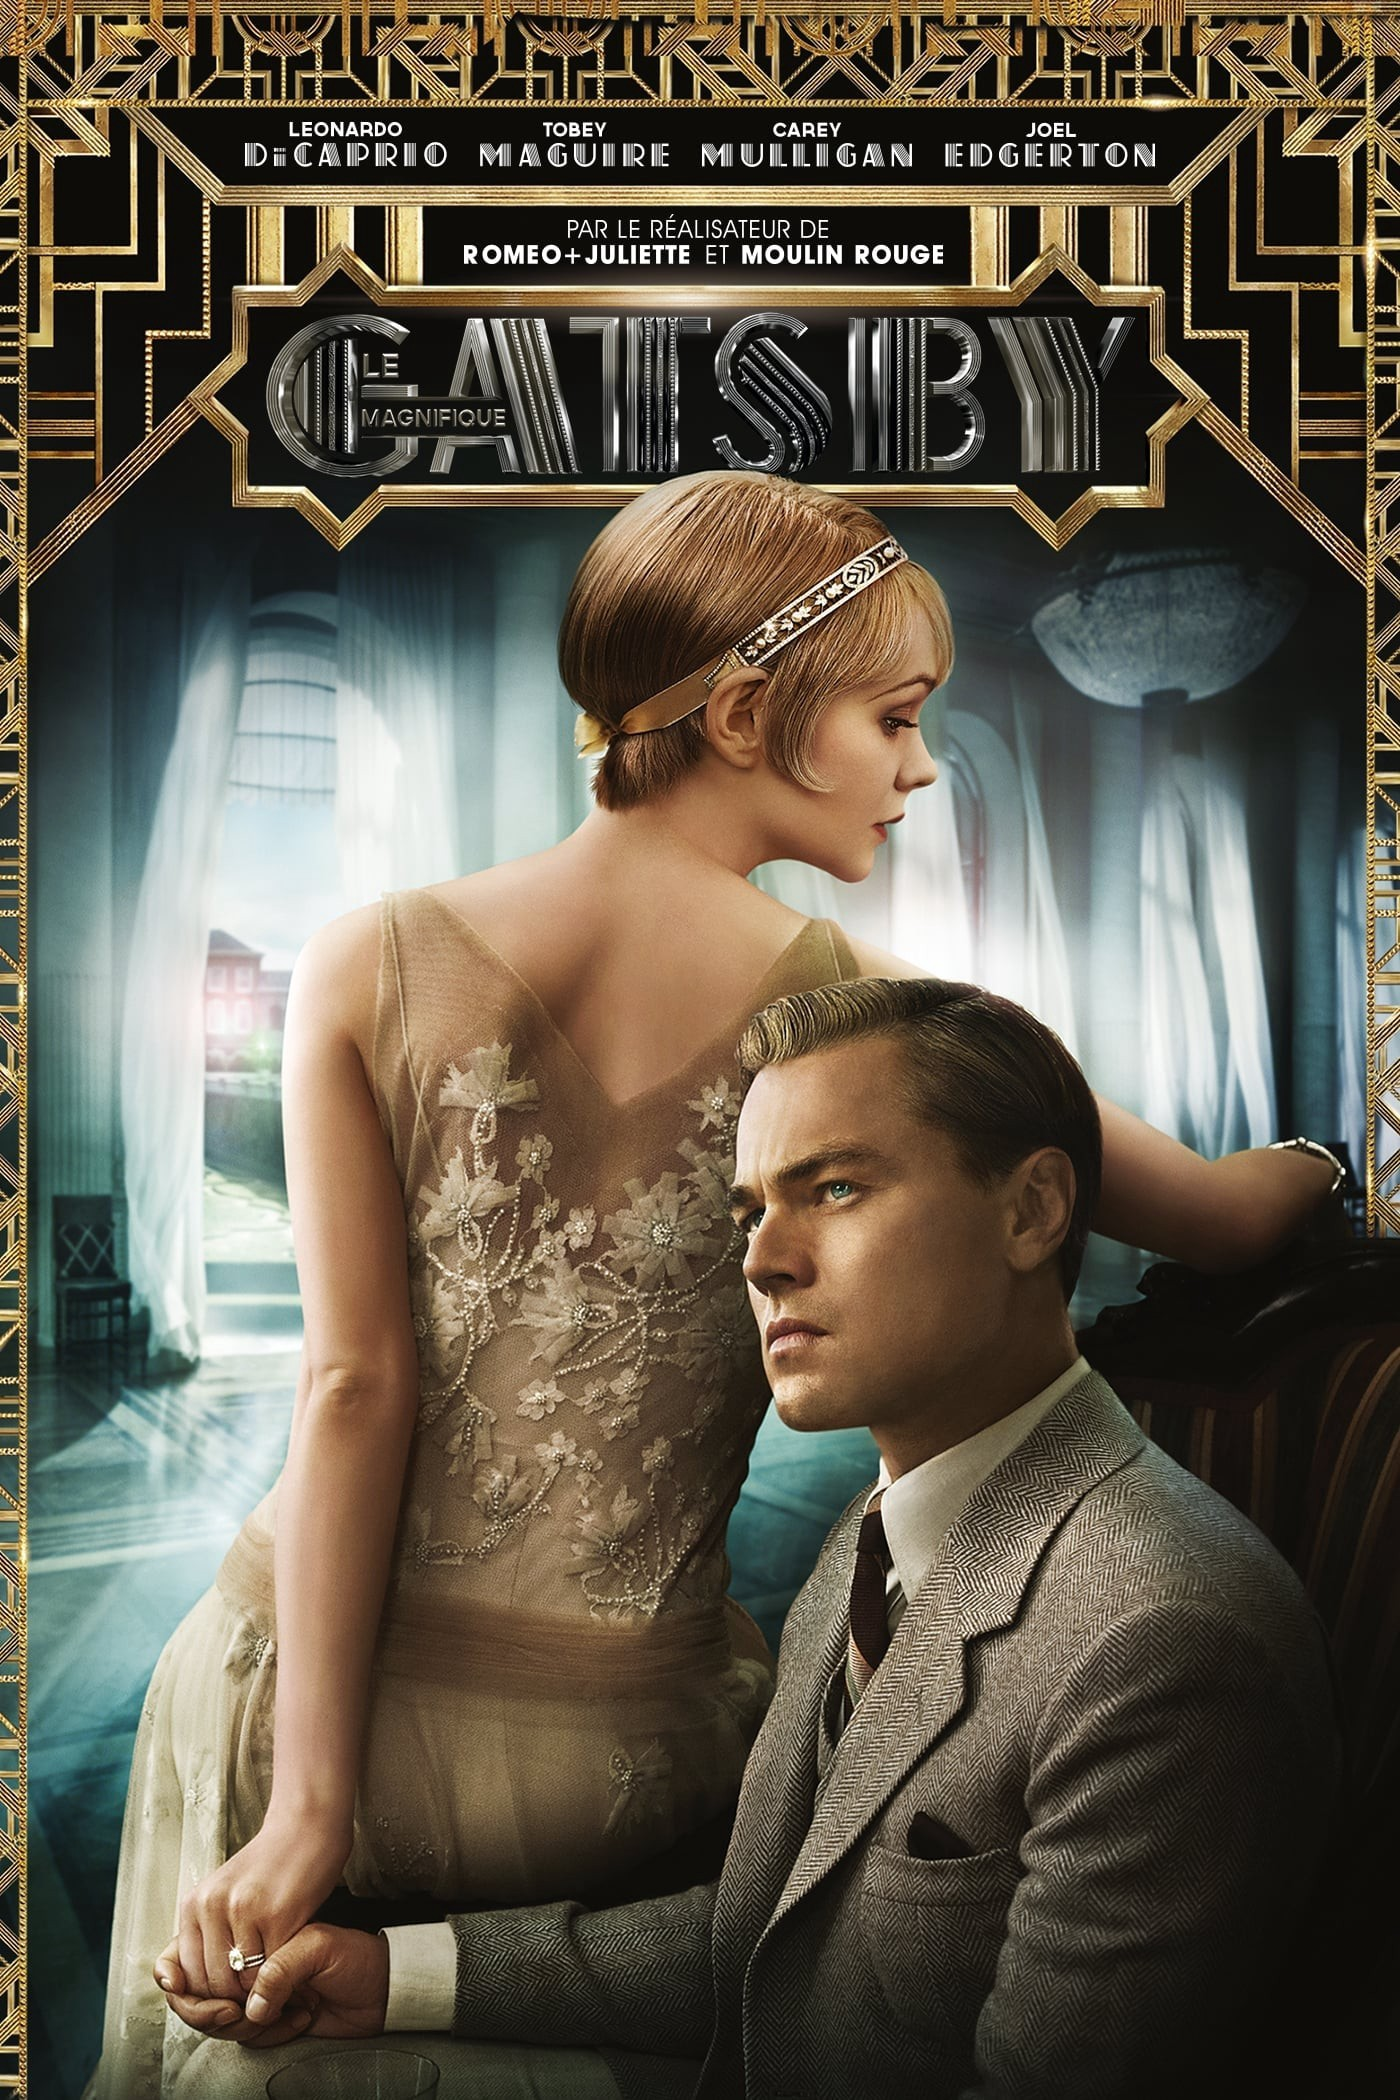 Gatsby Le Magnifique Streaming Hd : gatsby, magnifique, streaming, Stream, (France), Gatsby, Magnifique, (2013), VOSTFR, Complet-FILM, Ligne, Streaming, Vjulih, @Streaming-vF!!, [2013], STREAMING, [Français], `Complet, Medium